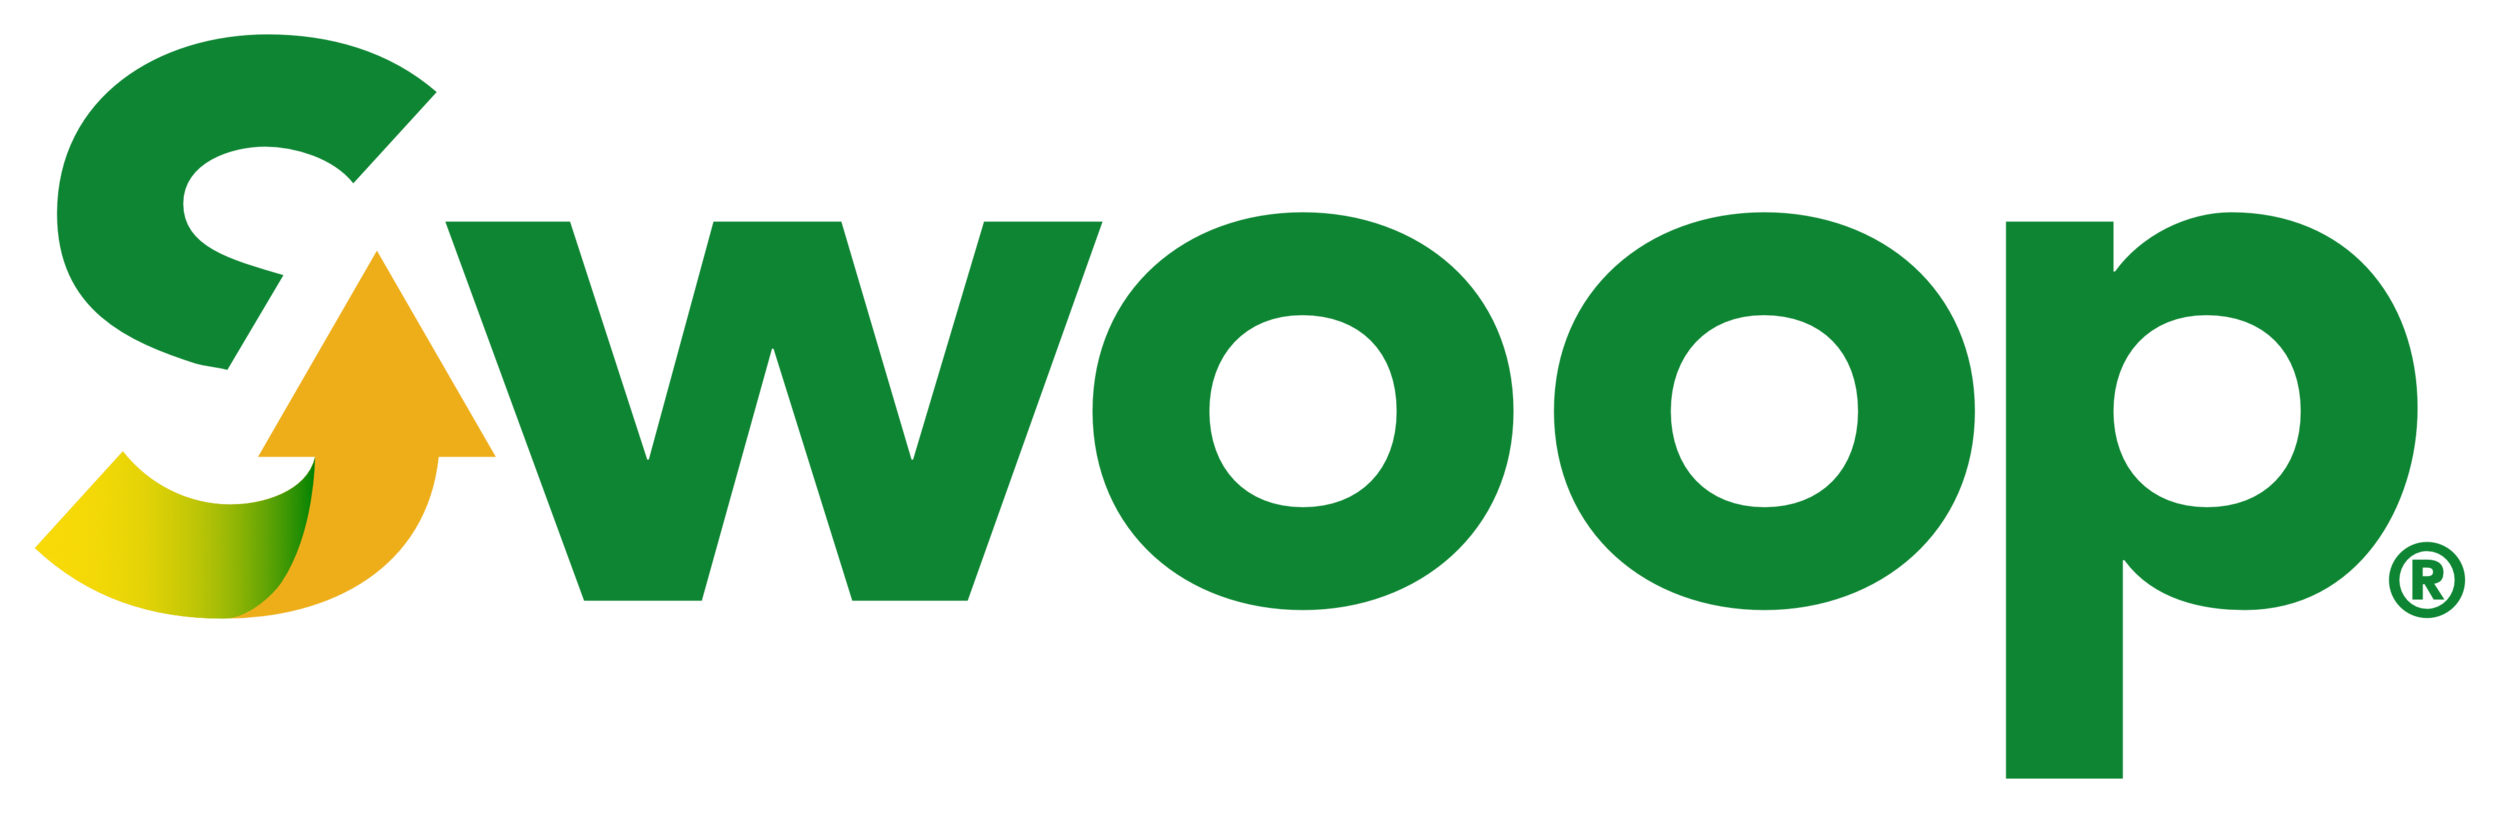 Swoop Logo 4000 by 1300 Pixels PNG.png